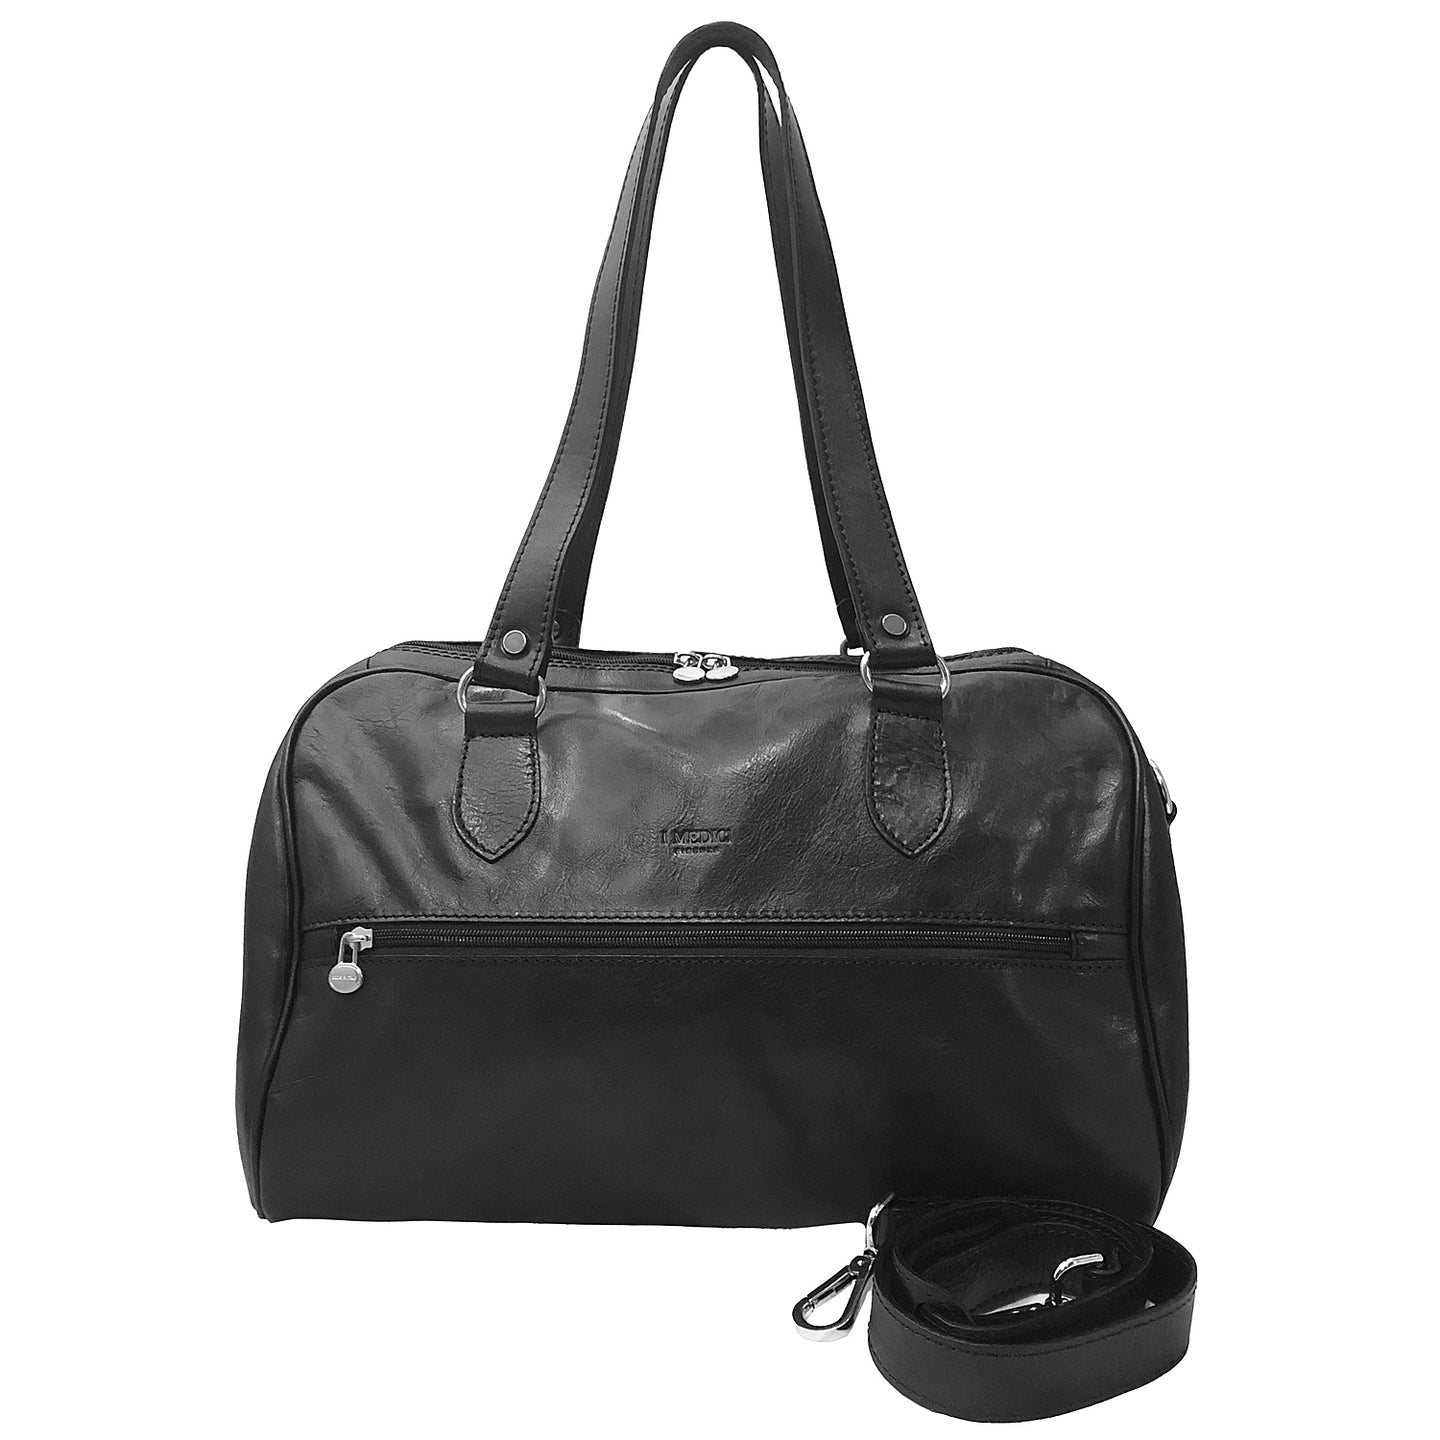 I Medici 408 Italian Leather Duffel Bag